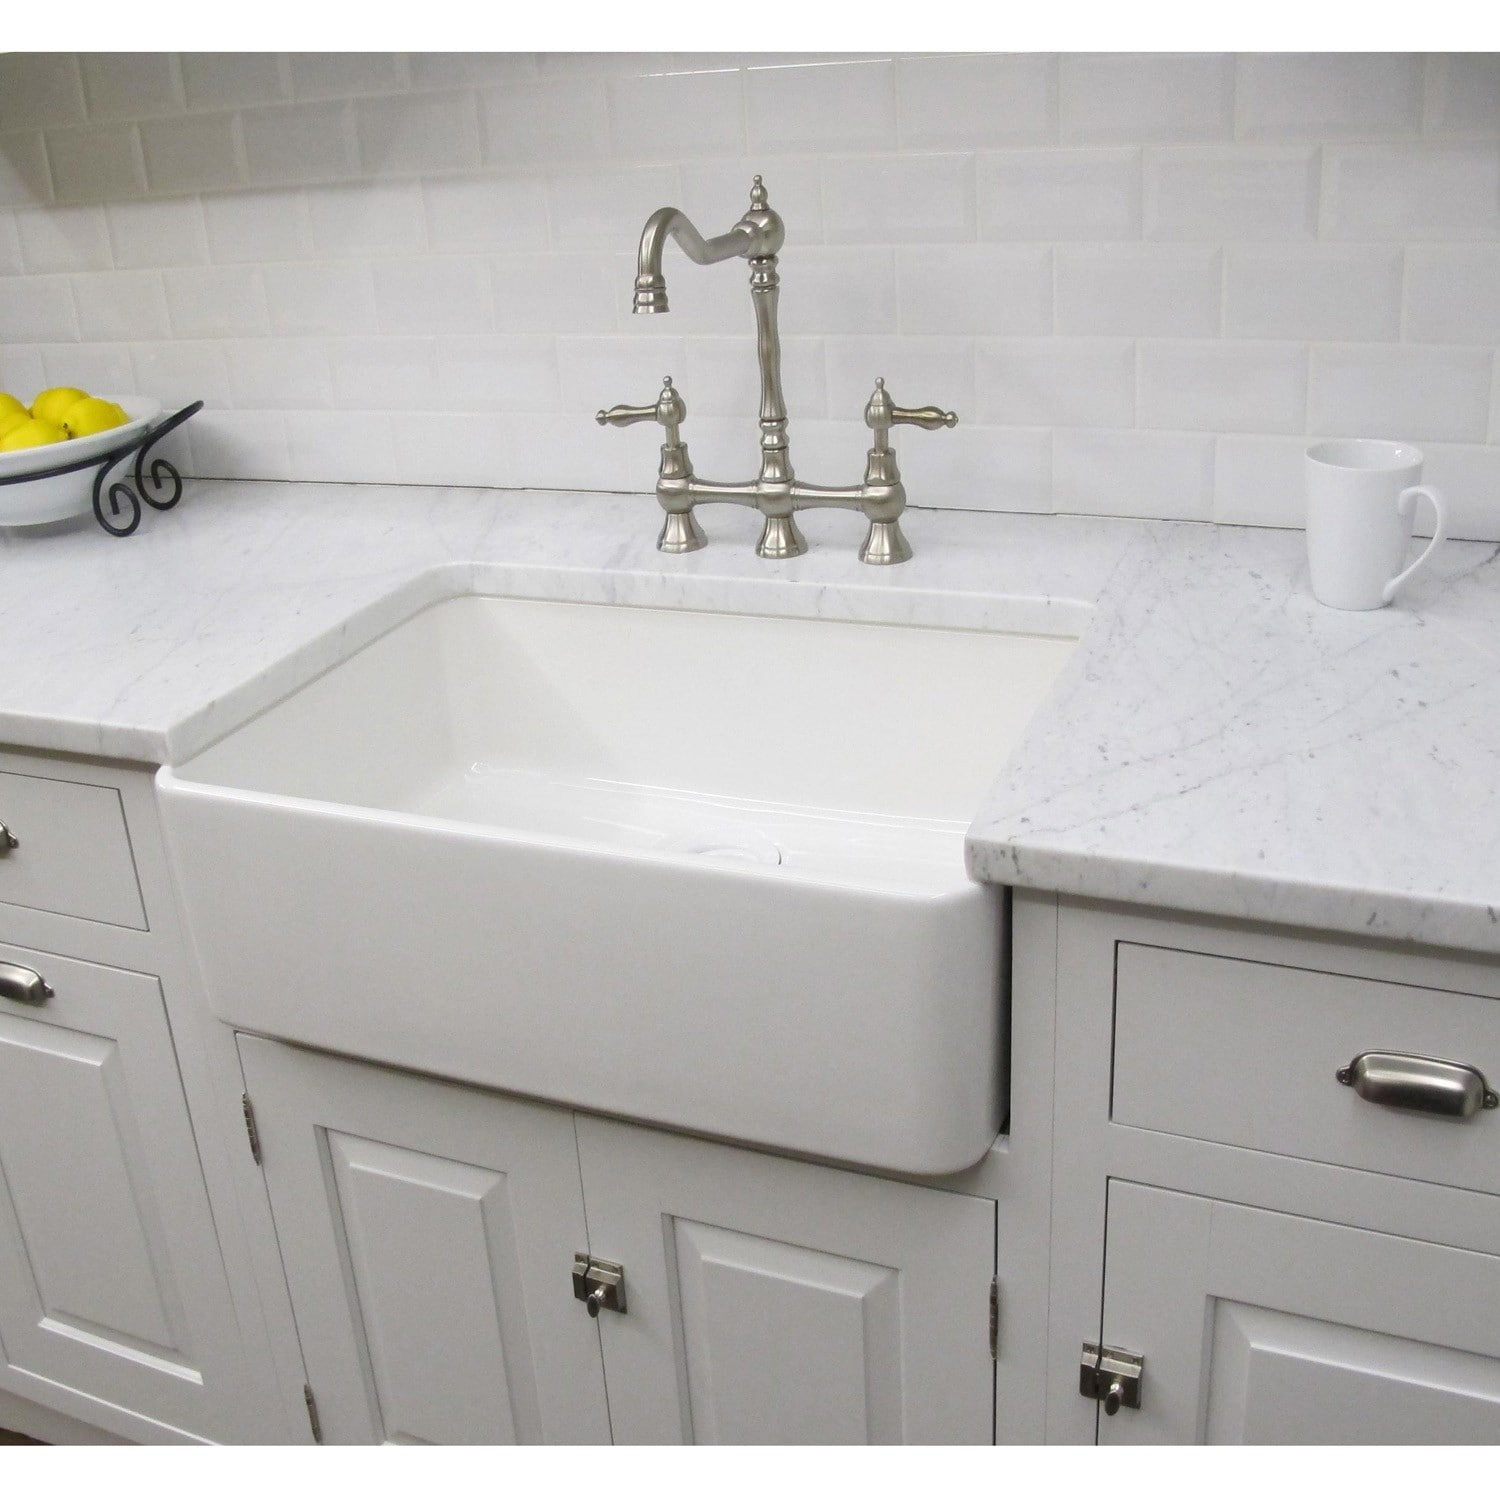 Overstock Farmhouse Sink Somette Fireclay Sutton 23 25 Inch White Farmhouse Kitchen